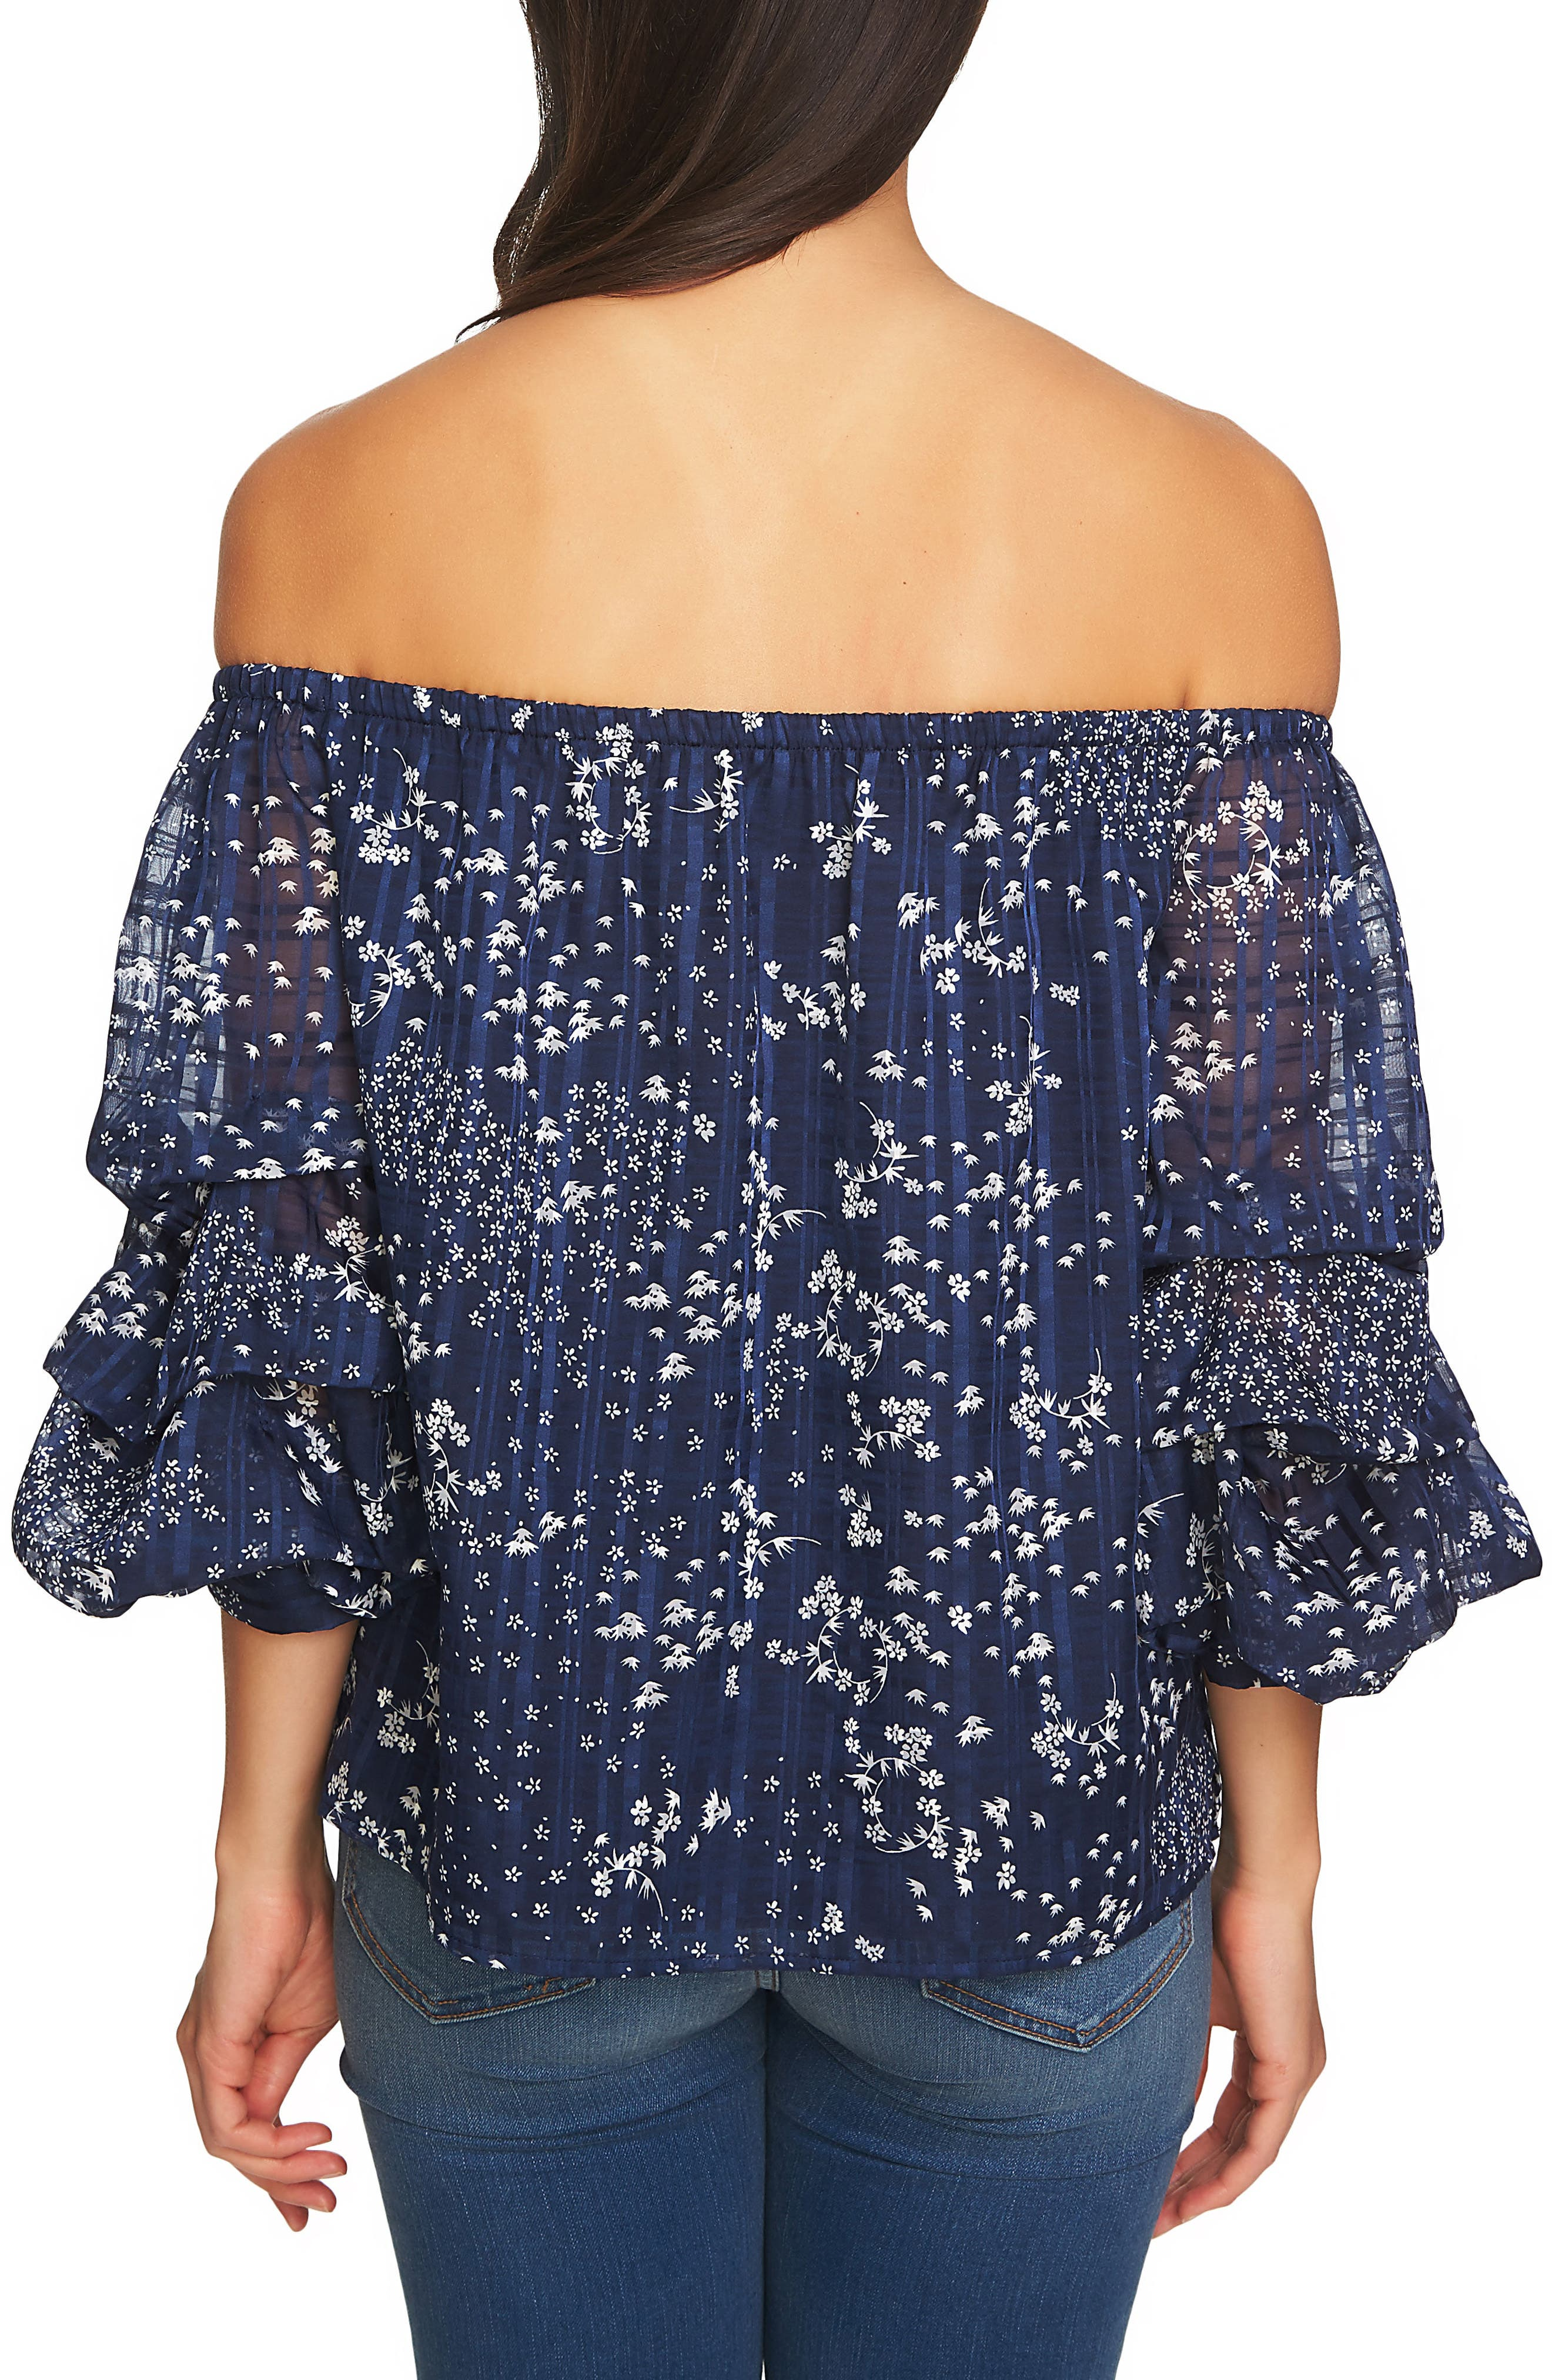 Off the Shoulder Top,                             Alternate thumbnail 2, color,                             453